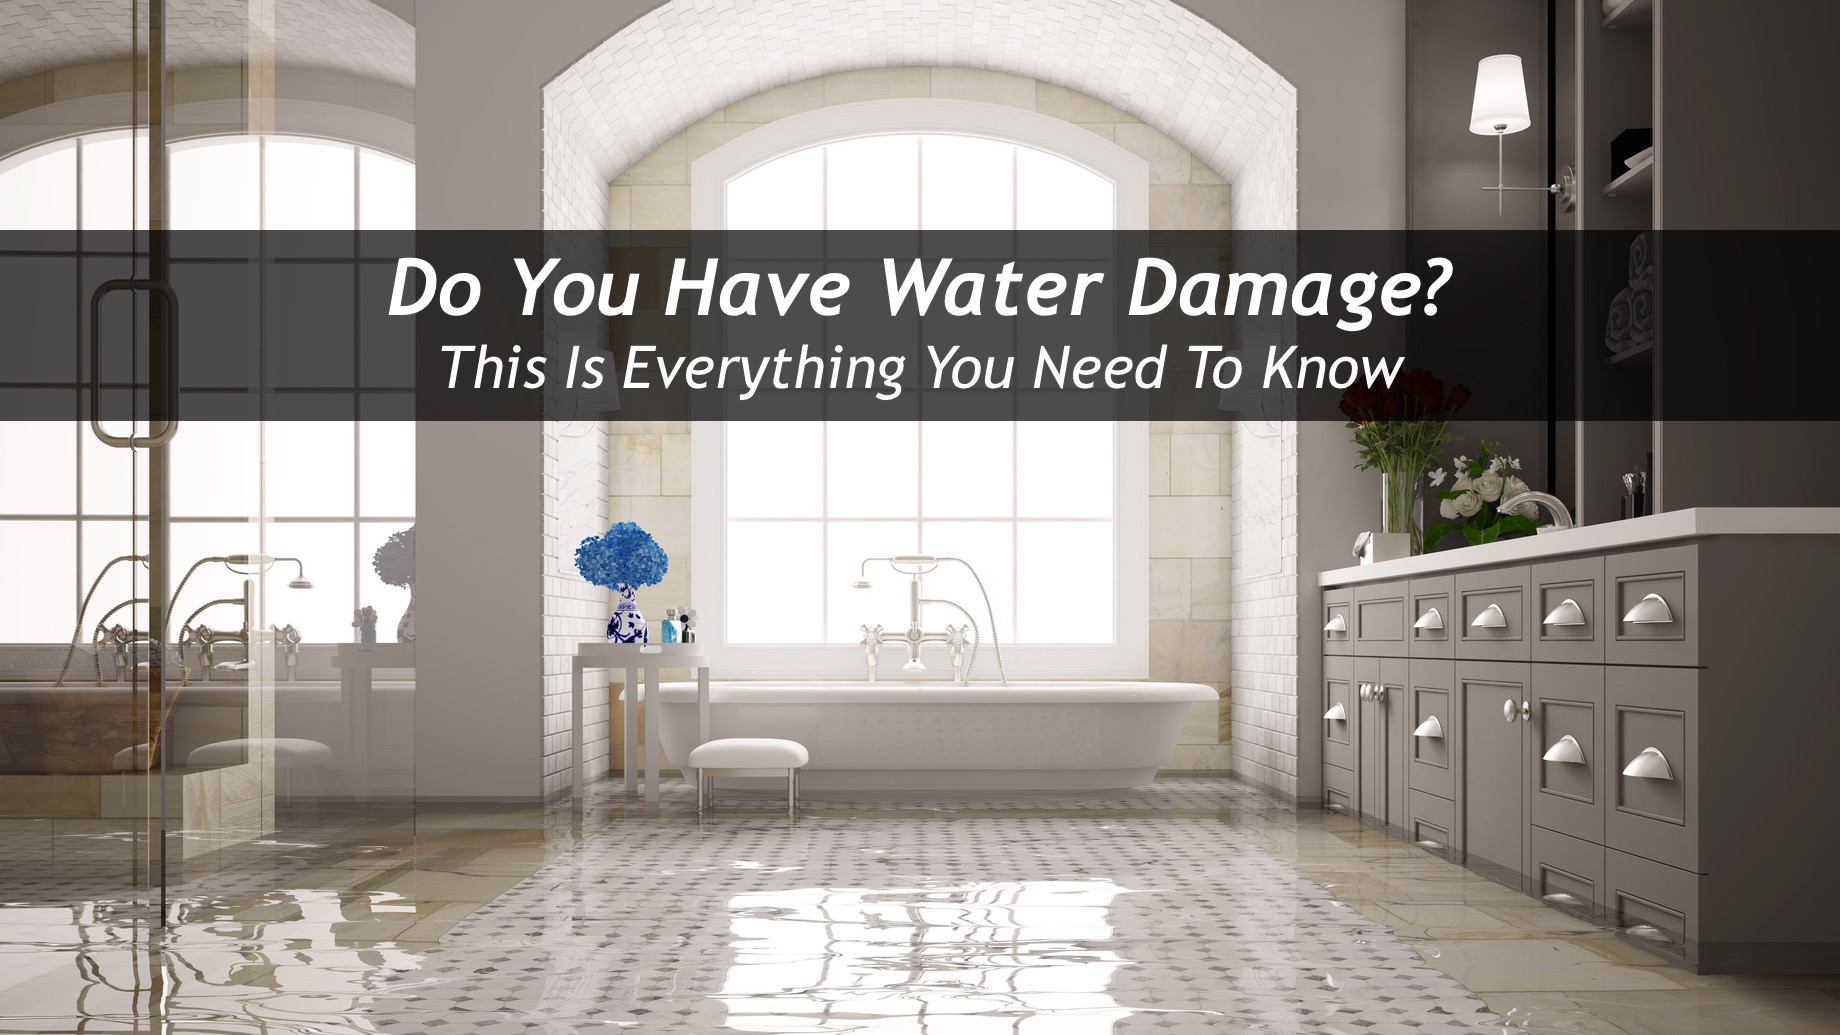 Do You Have Water Damage? This Is Everything You Need To Know